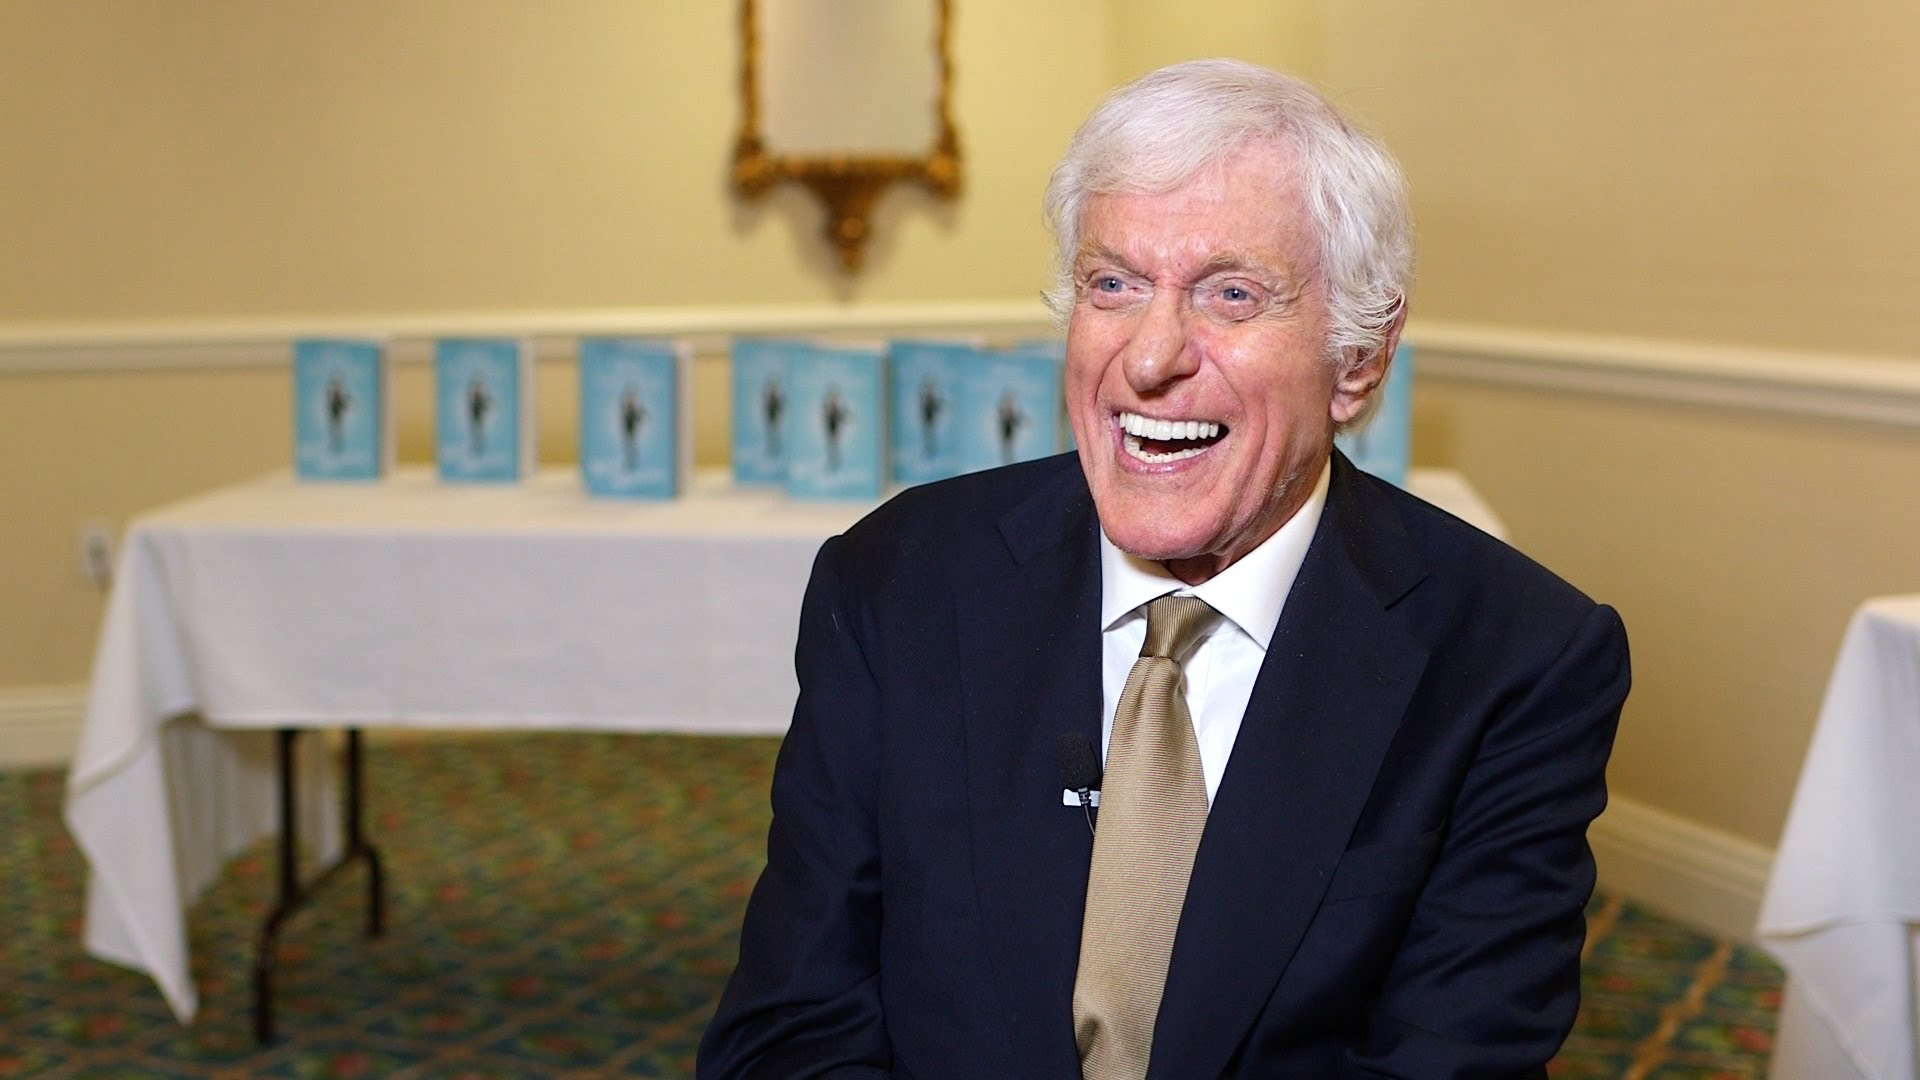 Dick Van Dyke Tell Seniors to Stay Active